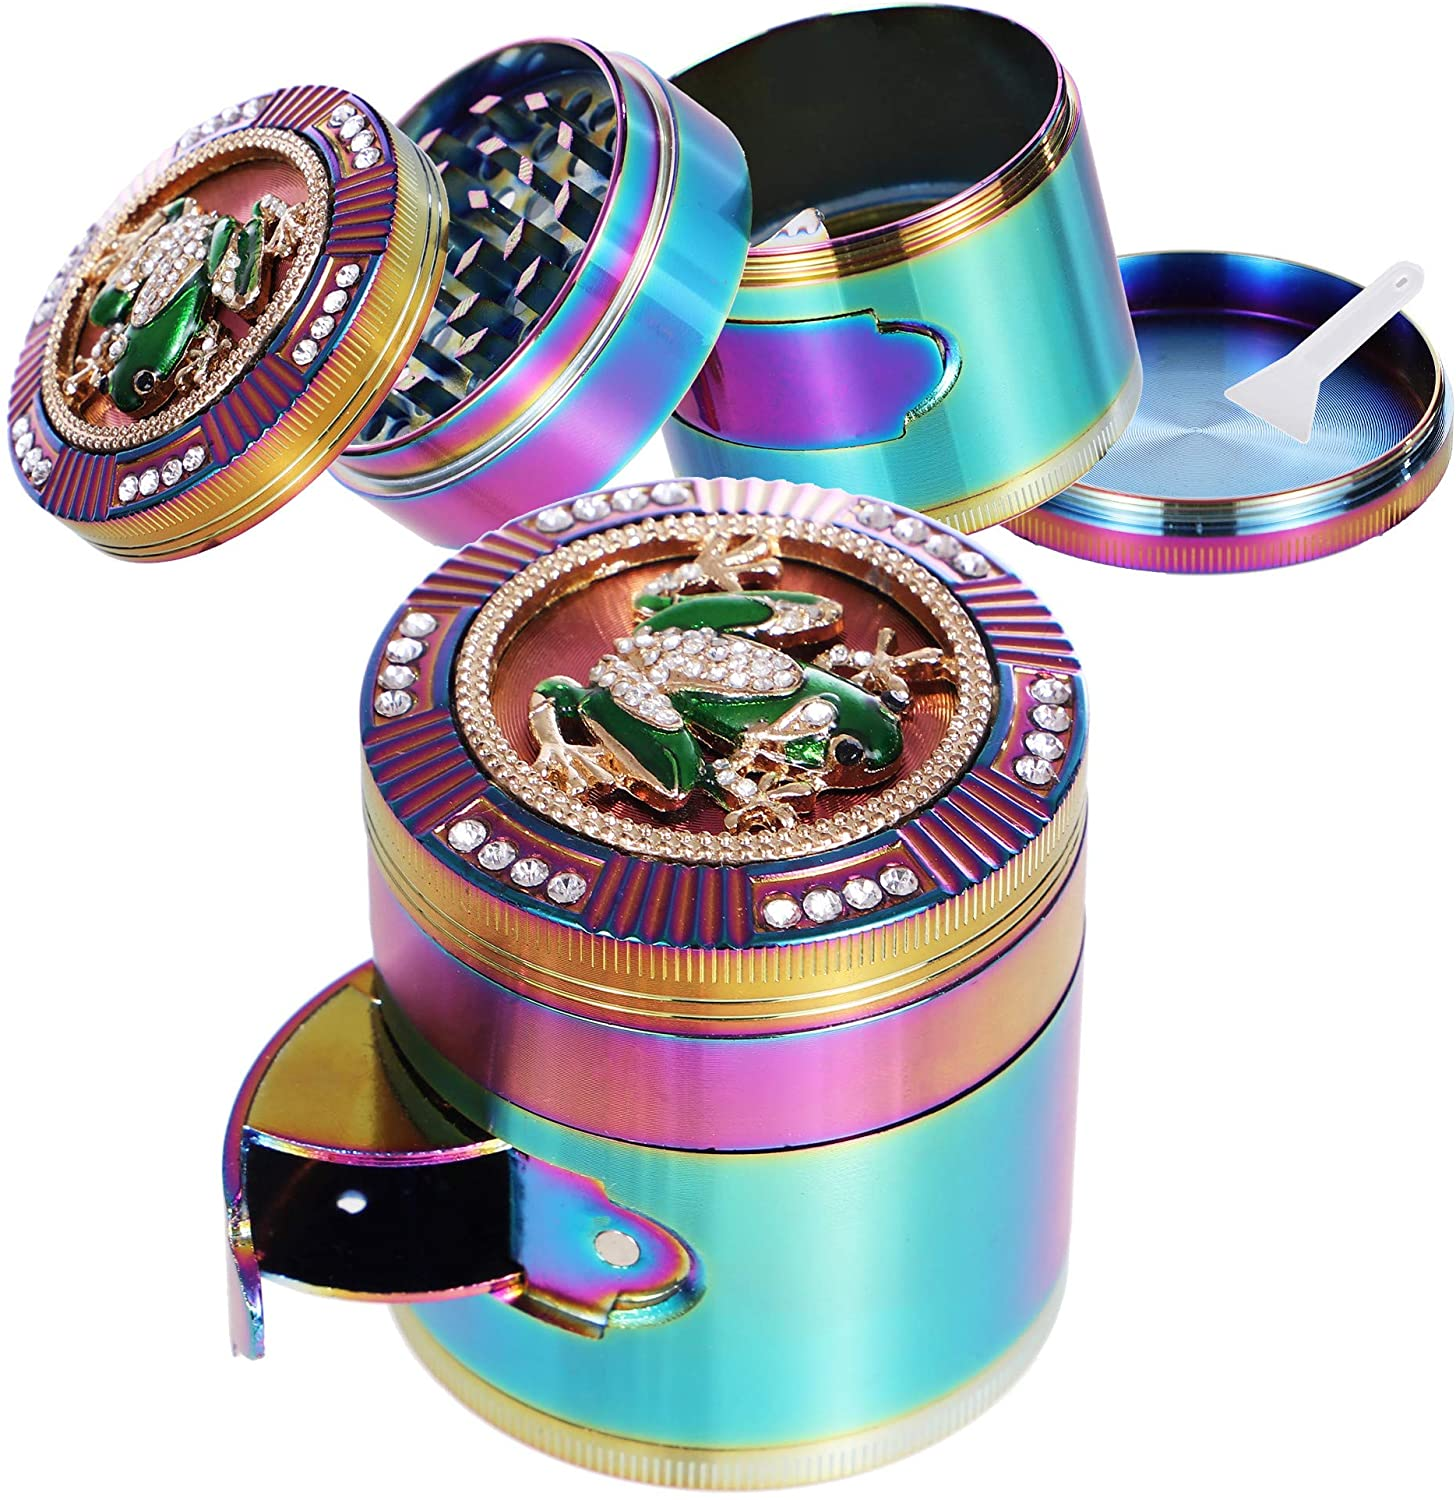 Finzdy Herb Grinder 2.87 Inches 4 Piece Grinder with Pollen Catcher Durable Zinc Alloy Herb Spice Heavy Duty Grinder with scrapper and Easy Access Window (Frog)